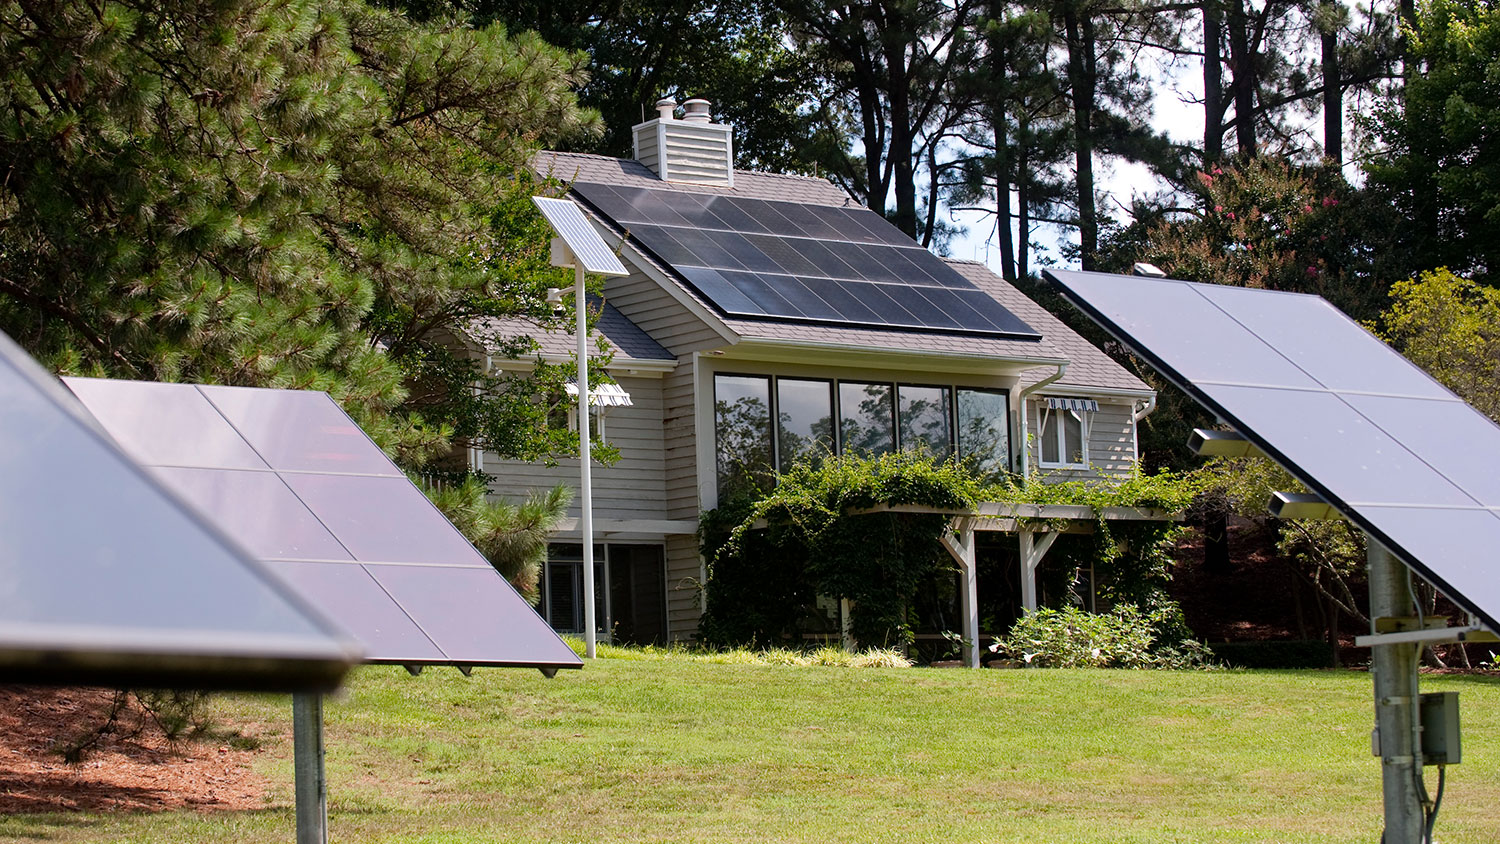 The NCState Solar House